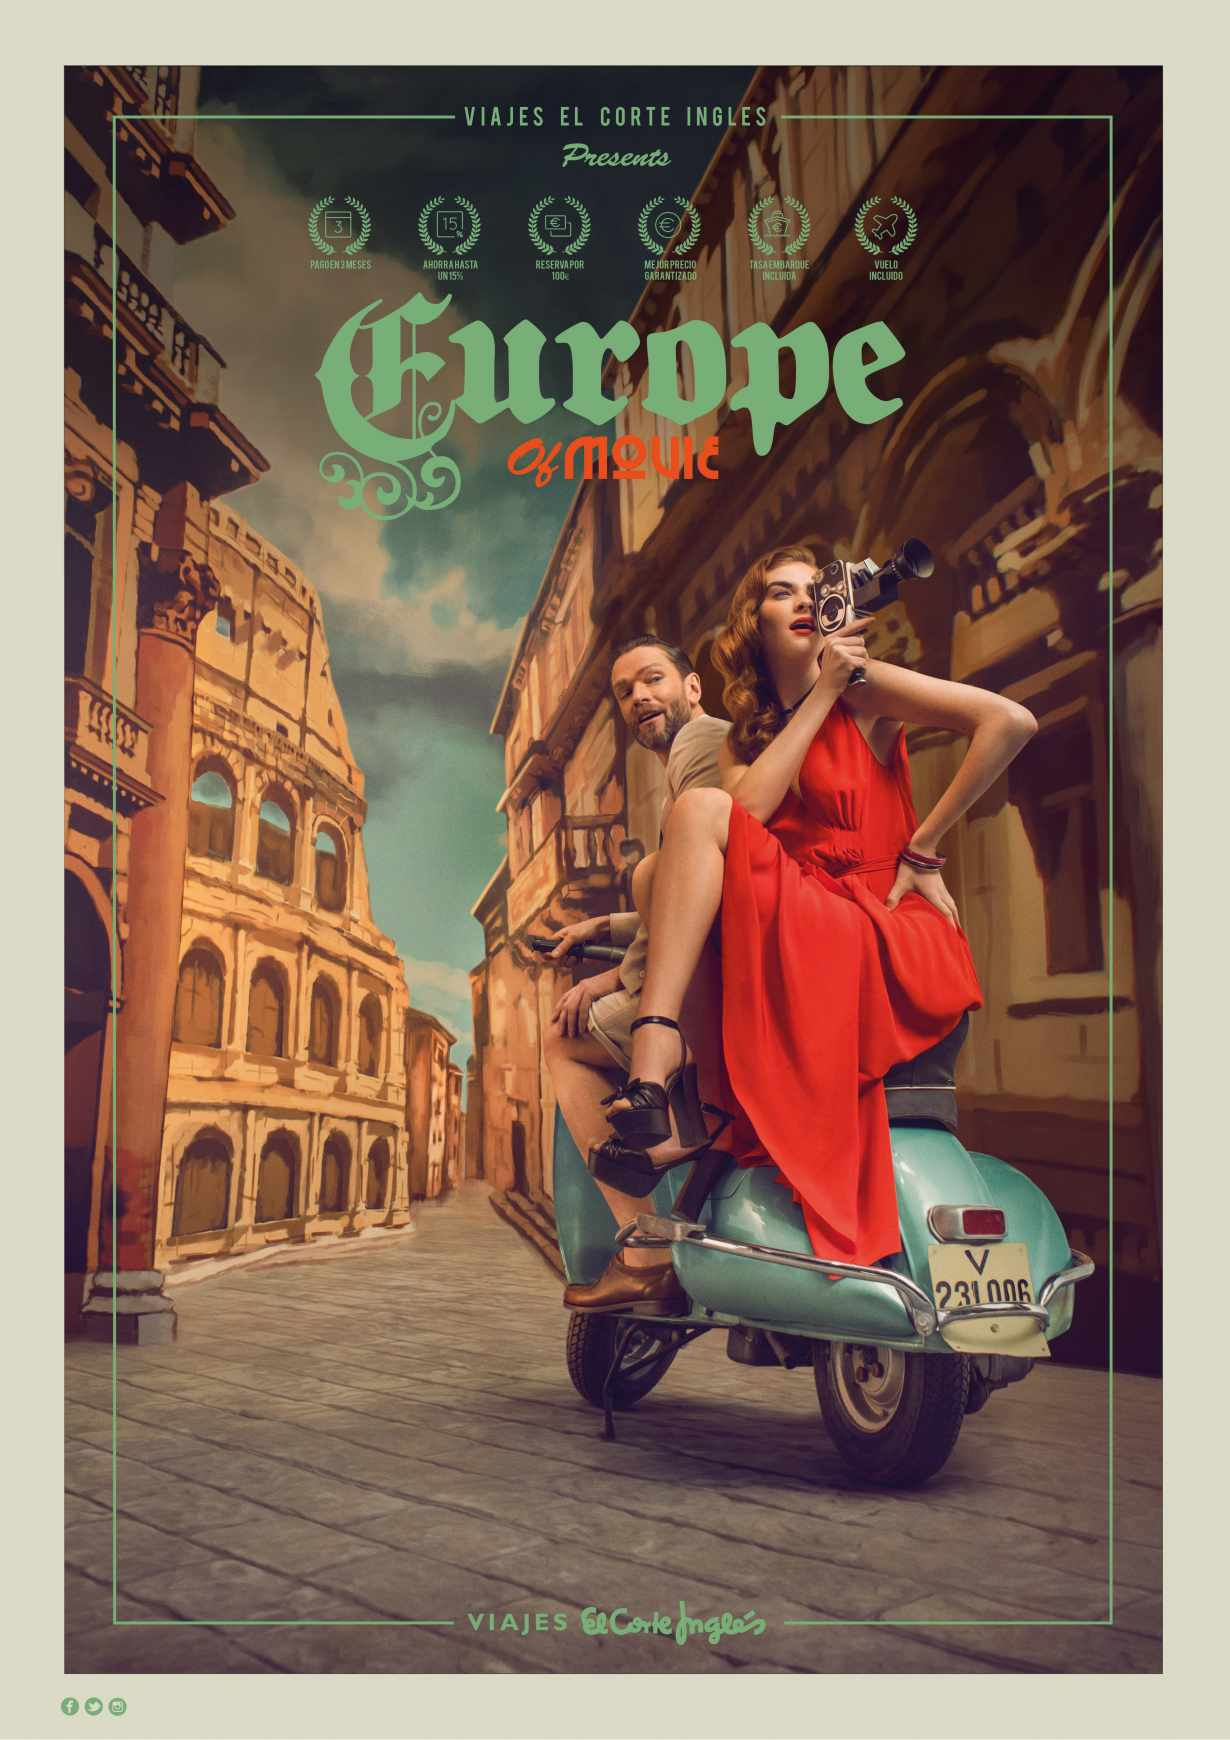 Viajes el Corte Ingles Print Ad - Europe of Movie